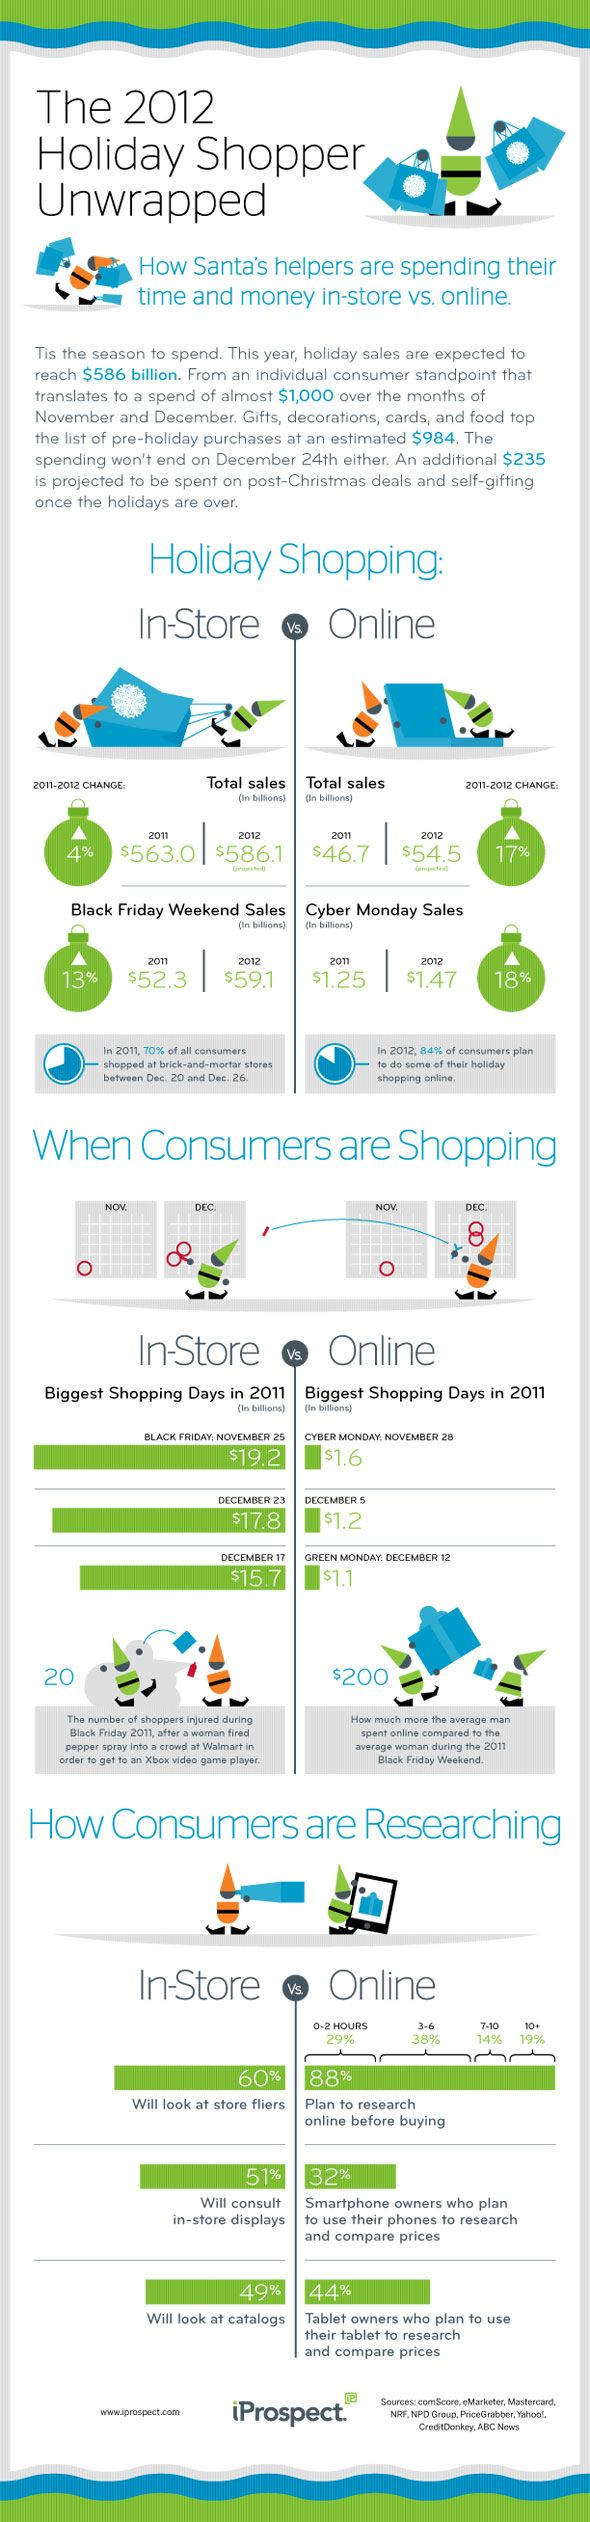 Great stats on the 2012 holiday shopper #infographic